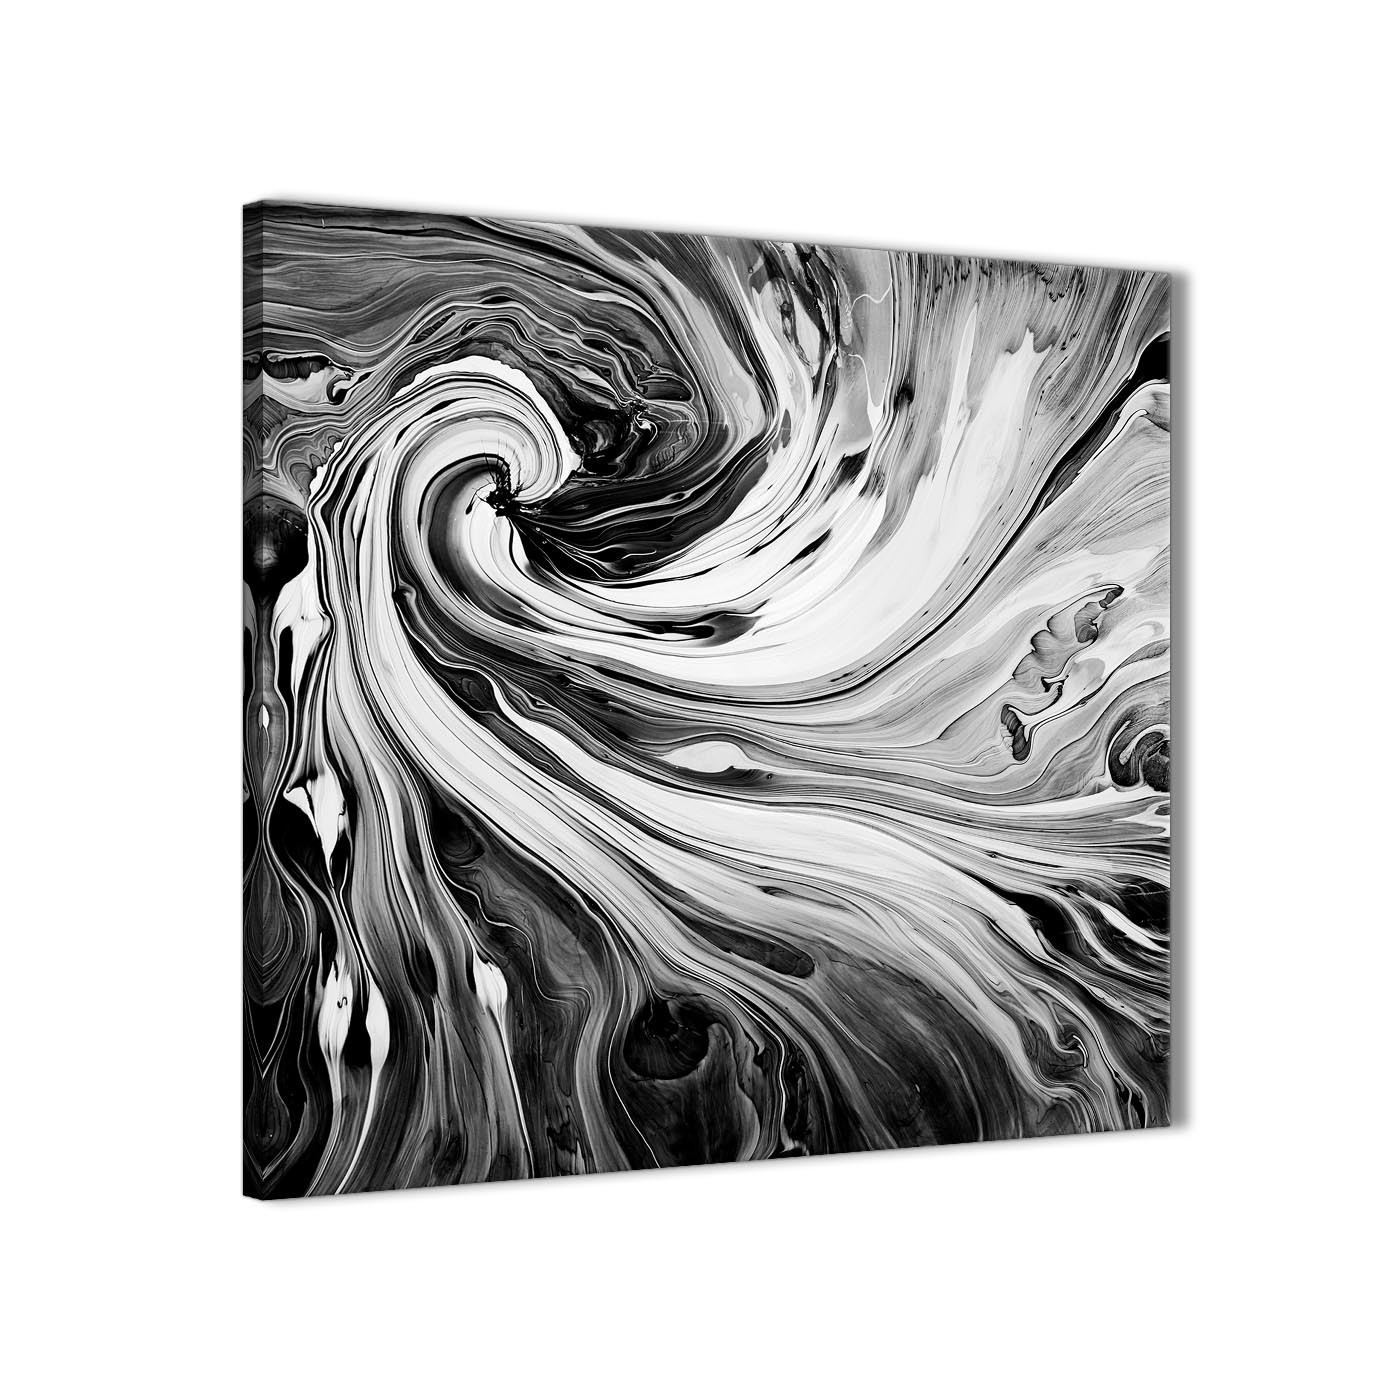 Modern black white grey swirls modern abstract canvas wall art modern 49cm square 1s354s for your display gallery item 1